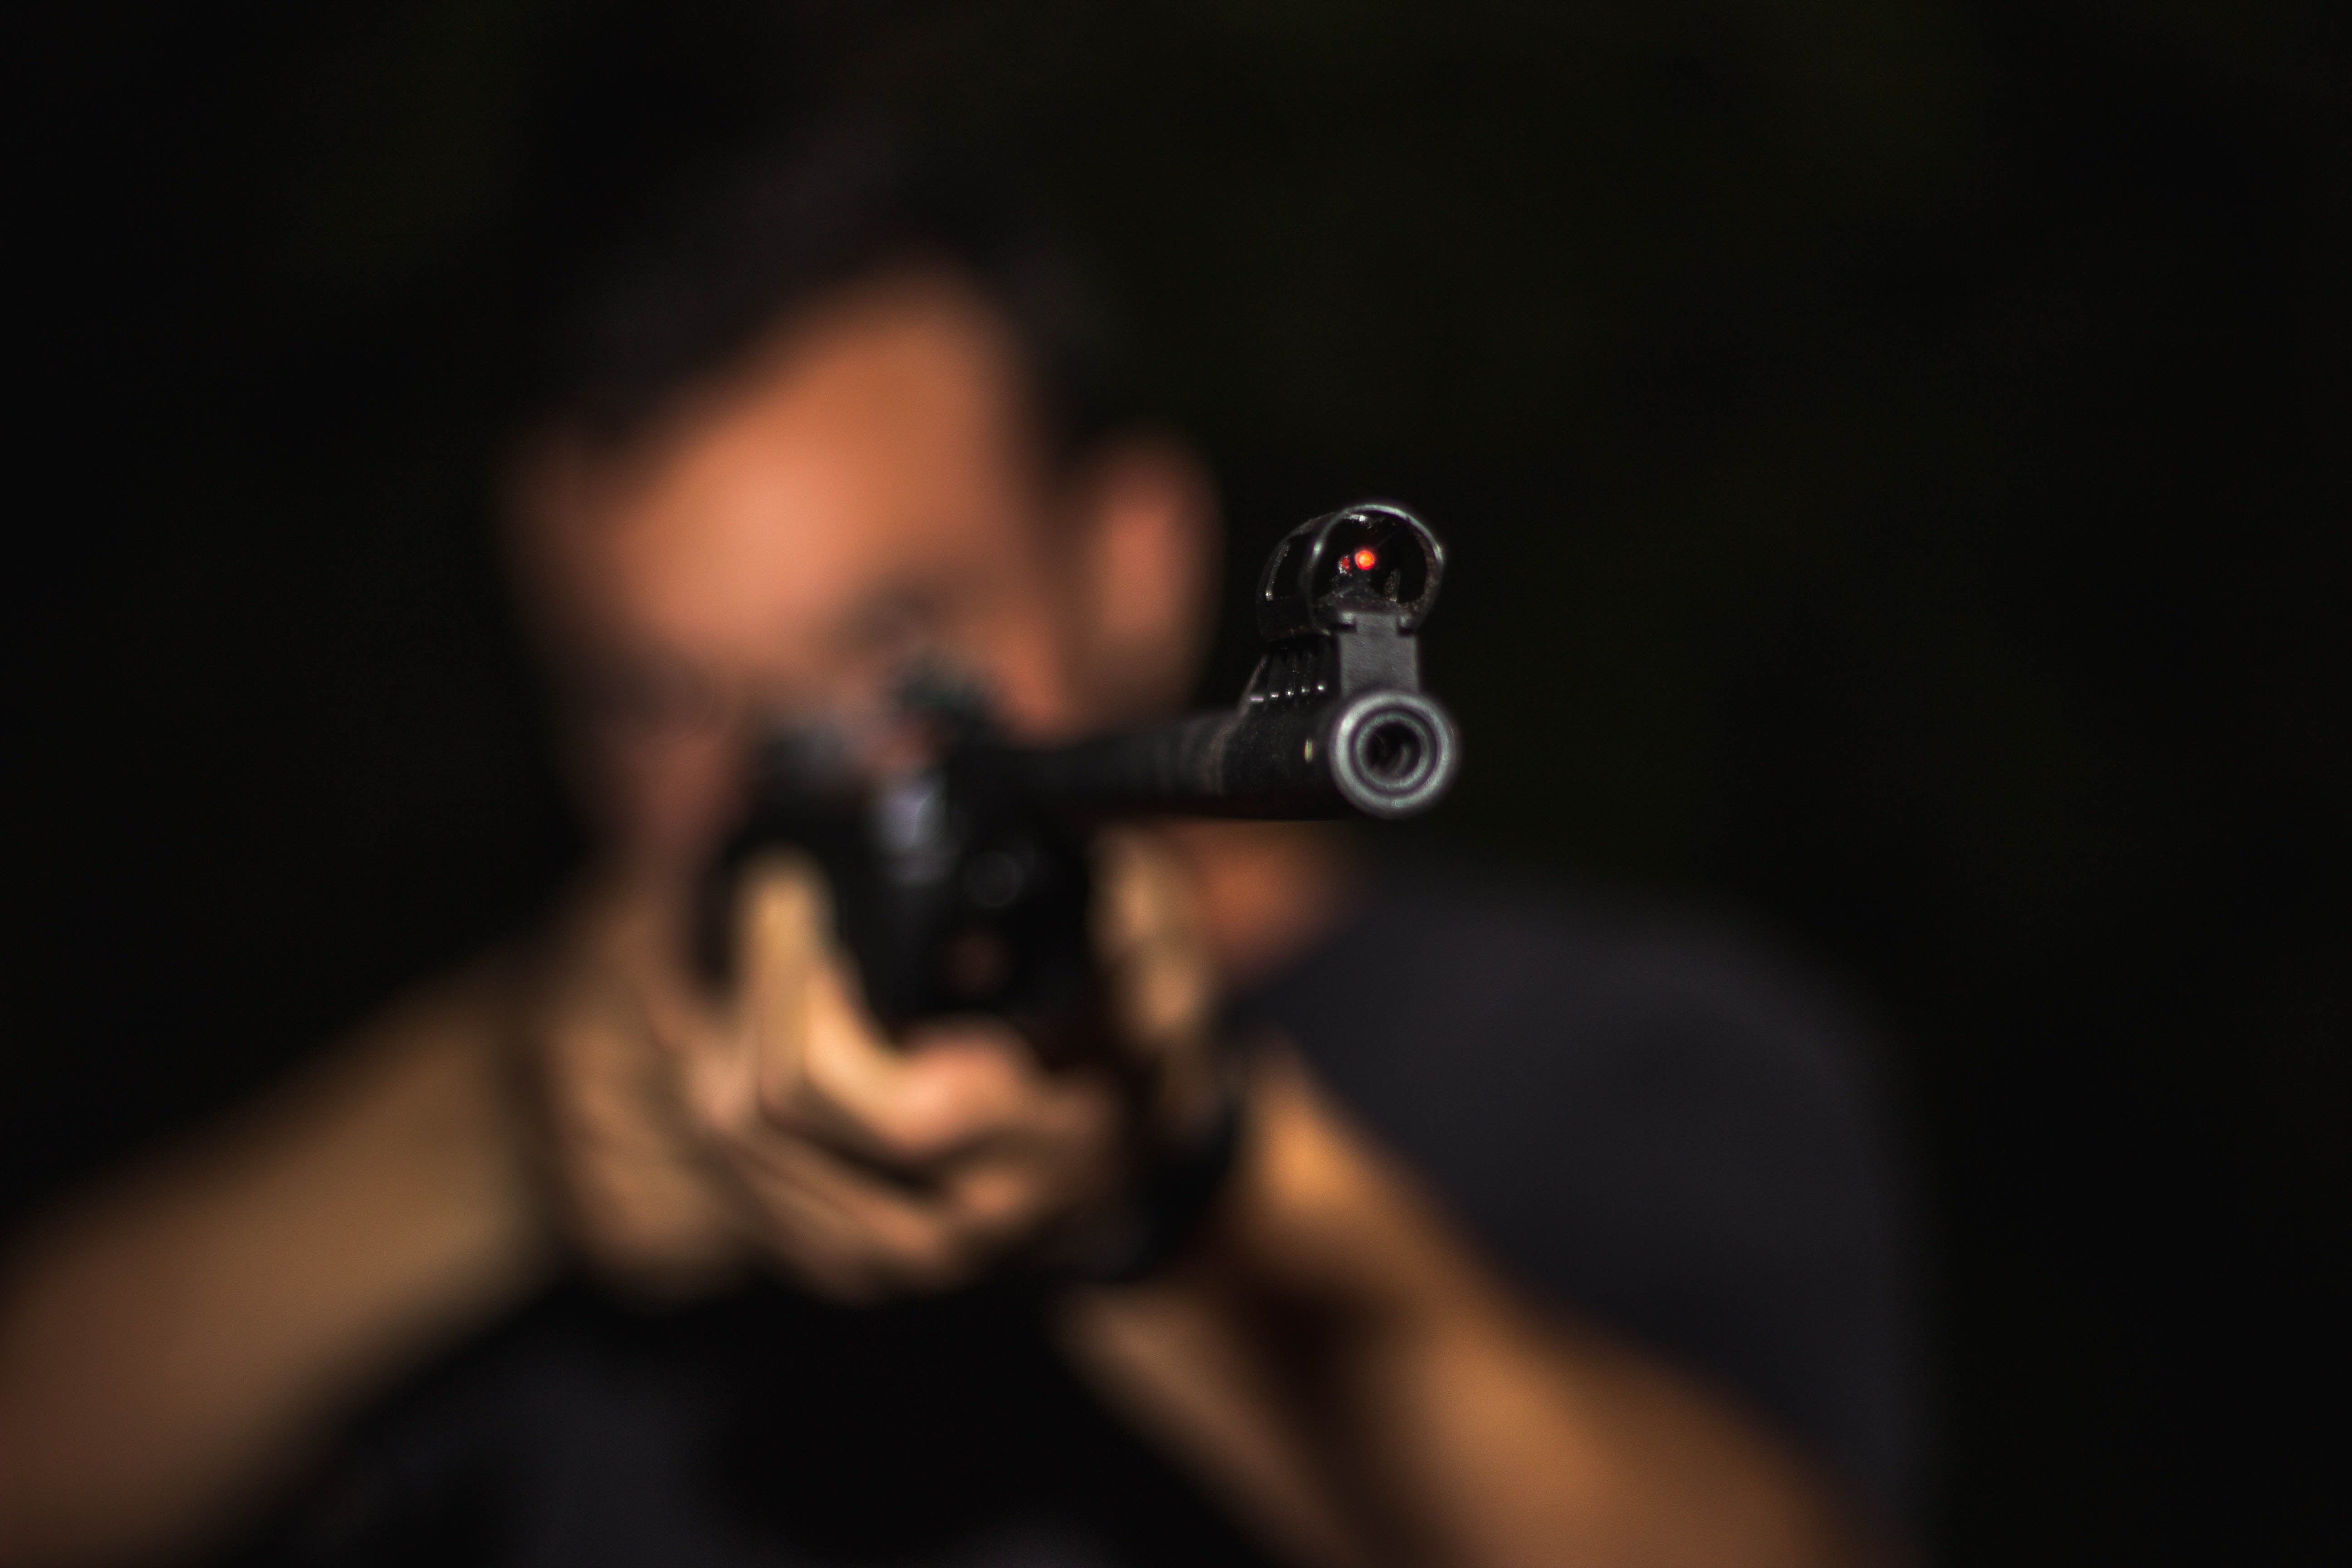 Pictured - A photo of a man holding a rifle and aiming | Source: Pexels